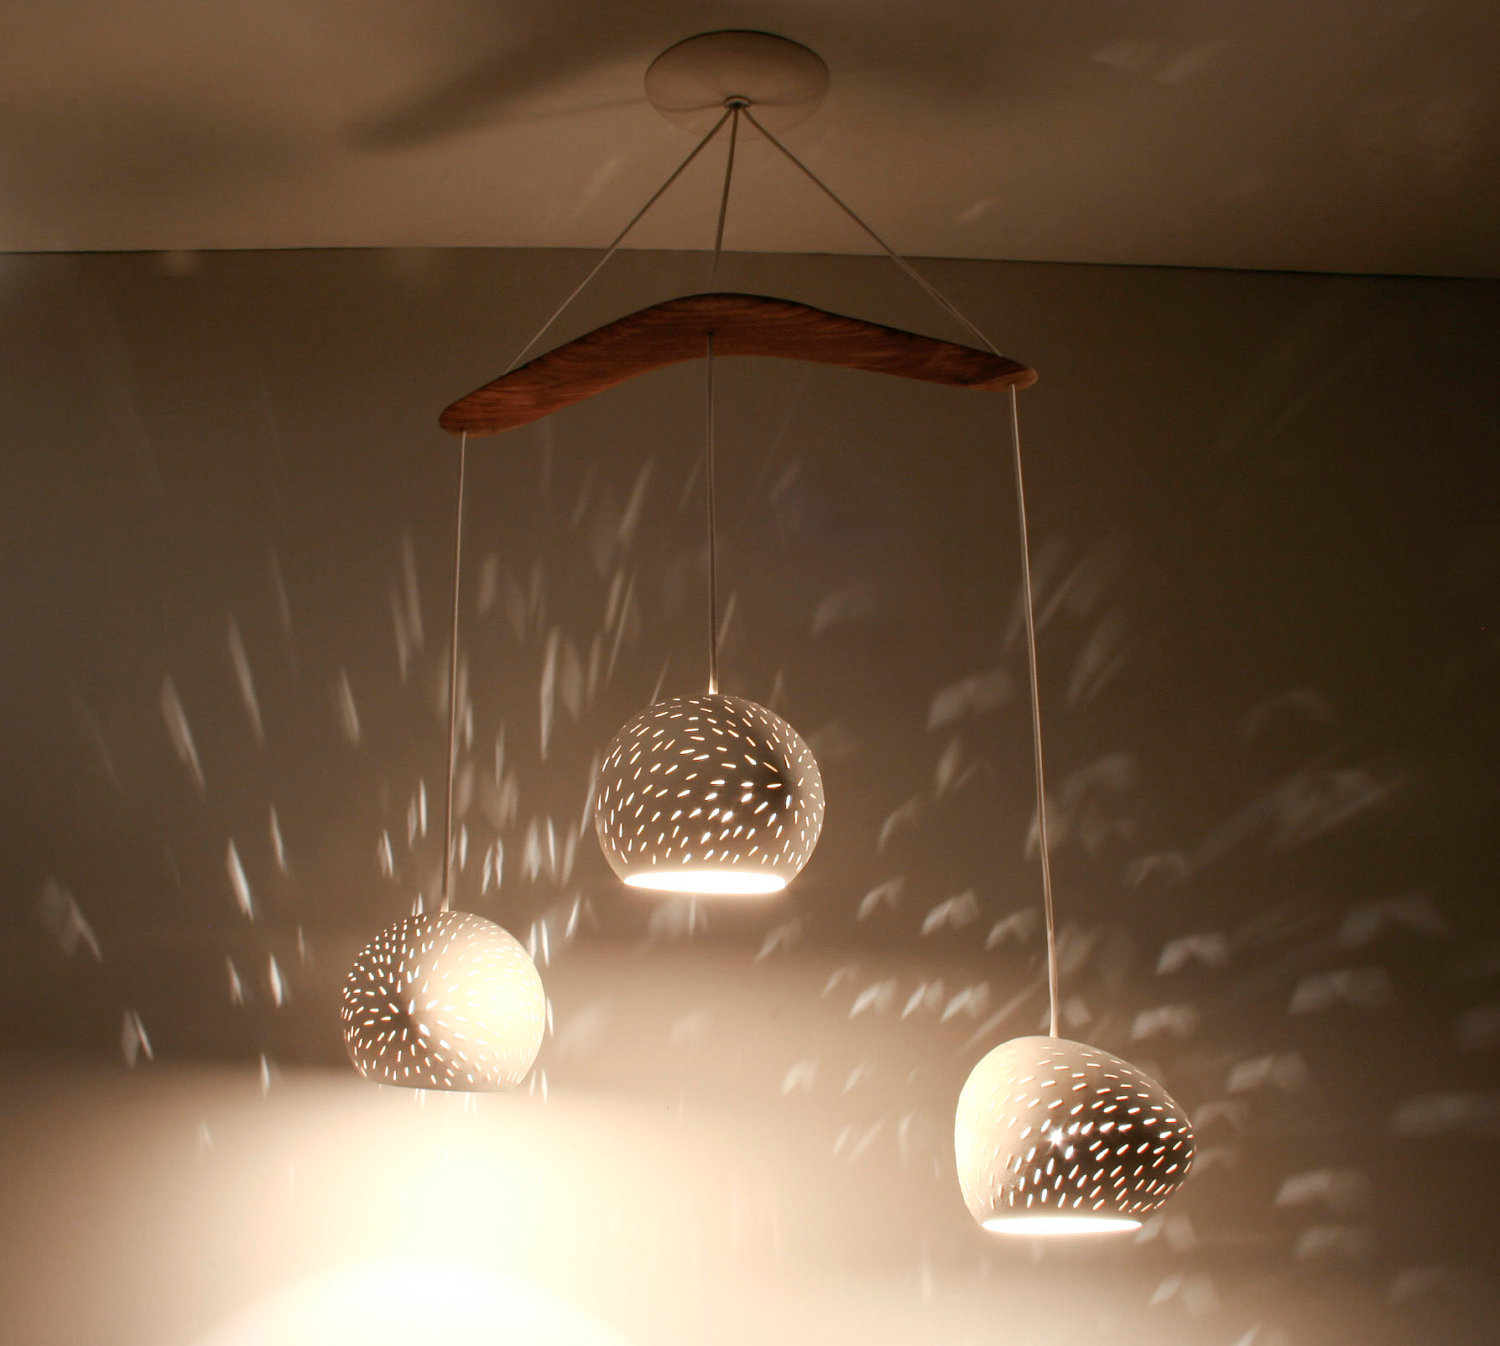 Light Bulb For Baby Room Lighting Inspireddesigner